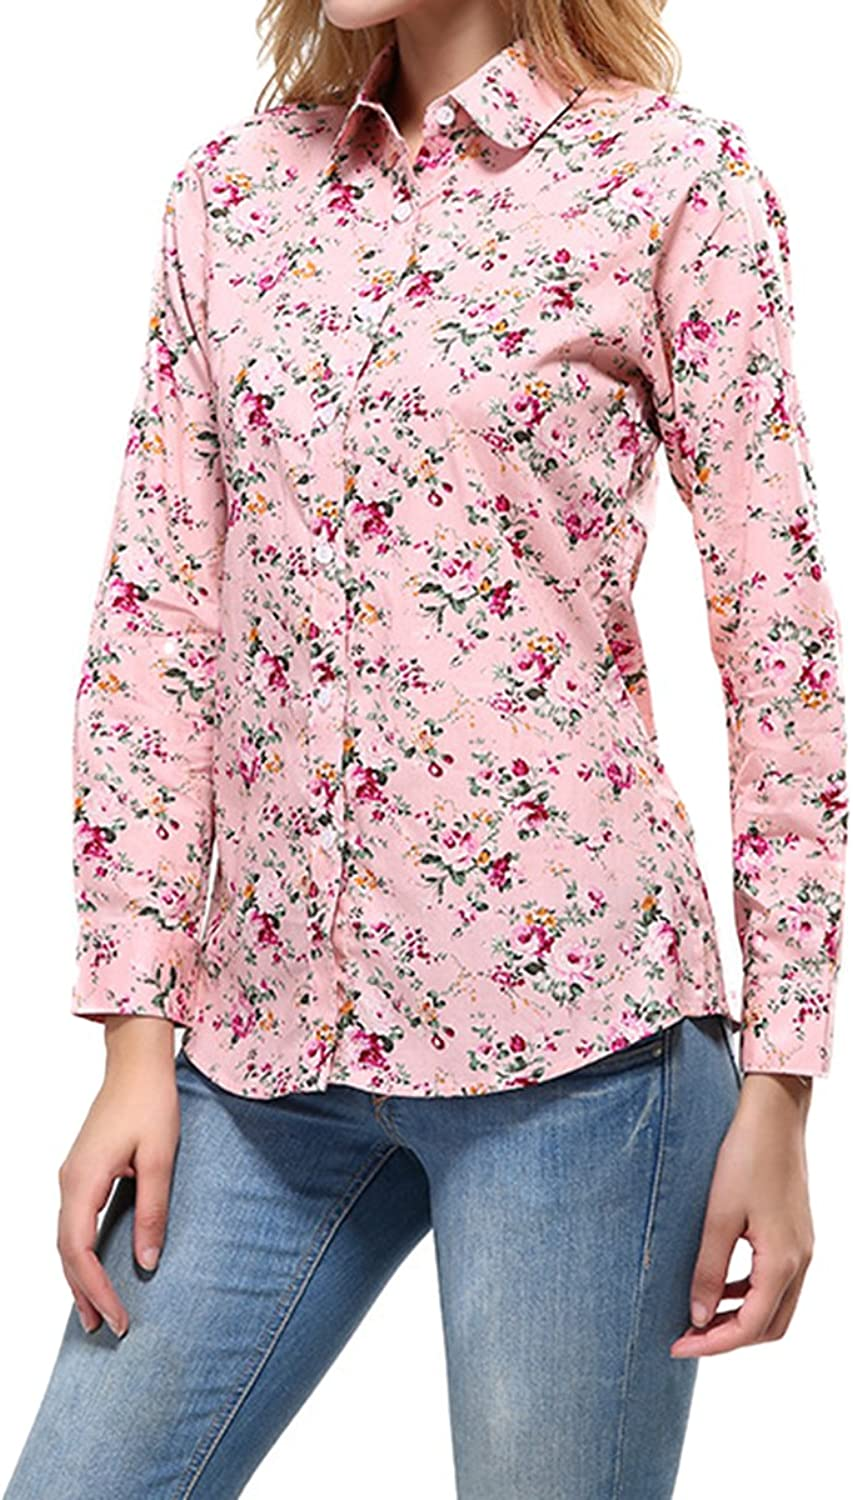 Cekaso Women's Long Sleeve Shirt Round Collar Floral Print Cotton Button Up Shirt